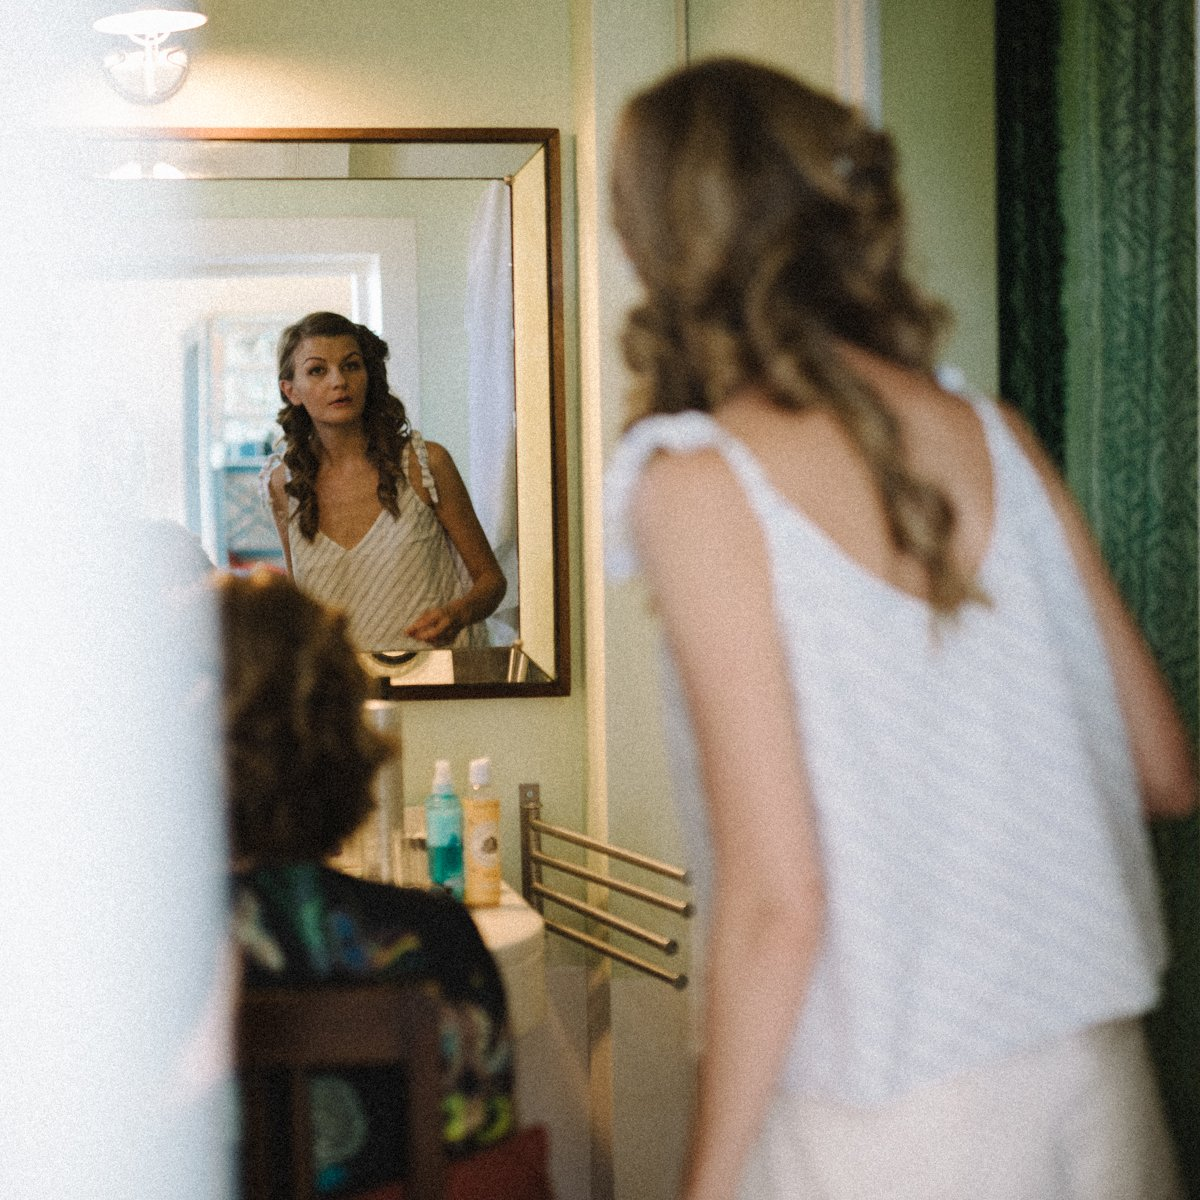 Private Villa in Umbria for destination wedding. Bride is getting ready - Roncaglione wedding photography